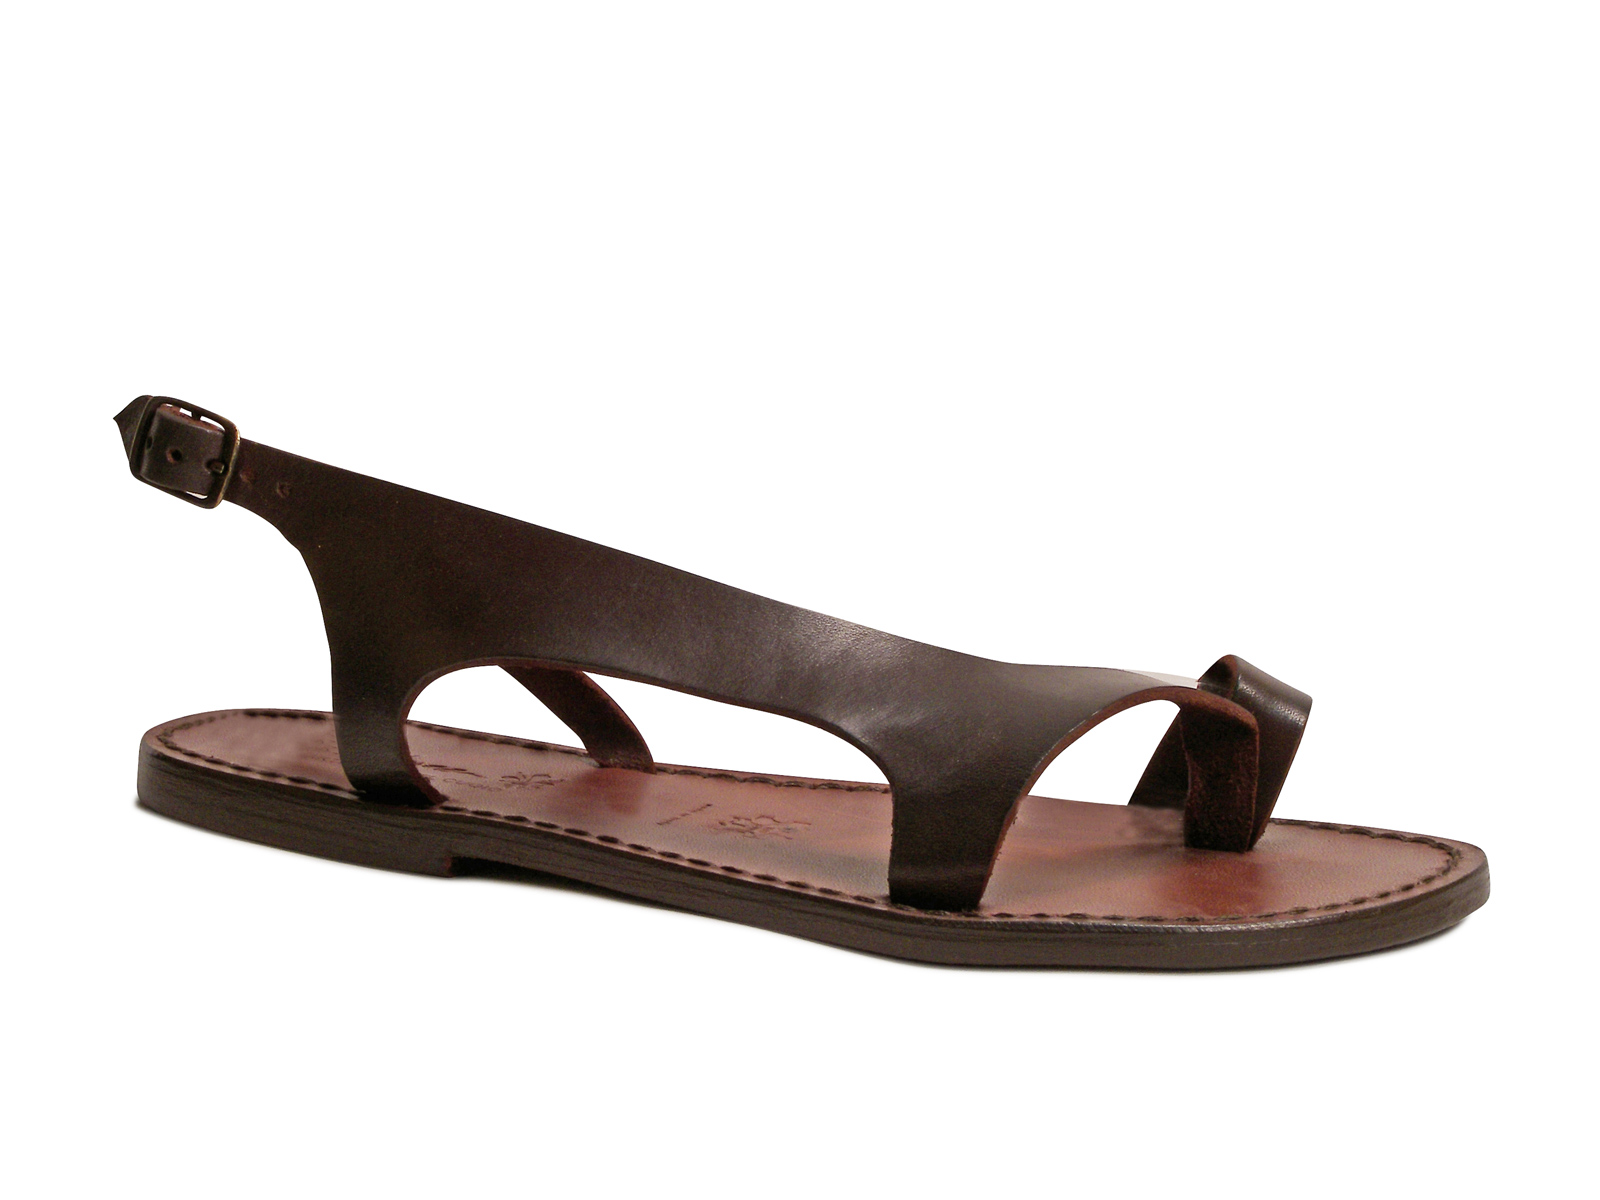 Details about Handmade brown genuine leather thong sandals for women Made in Italy